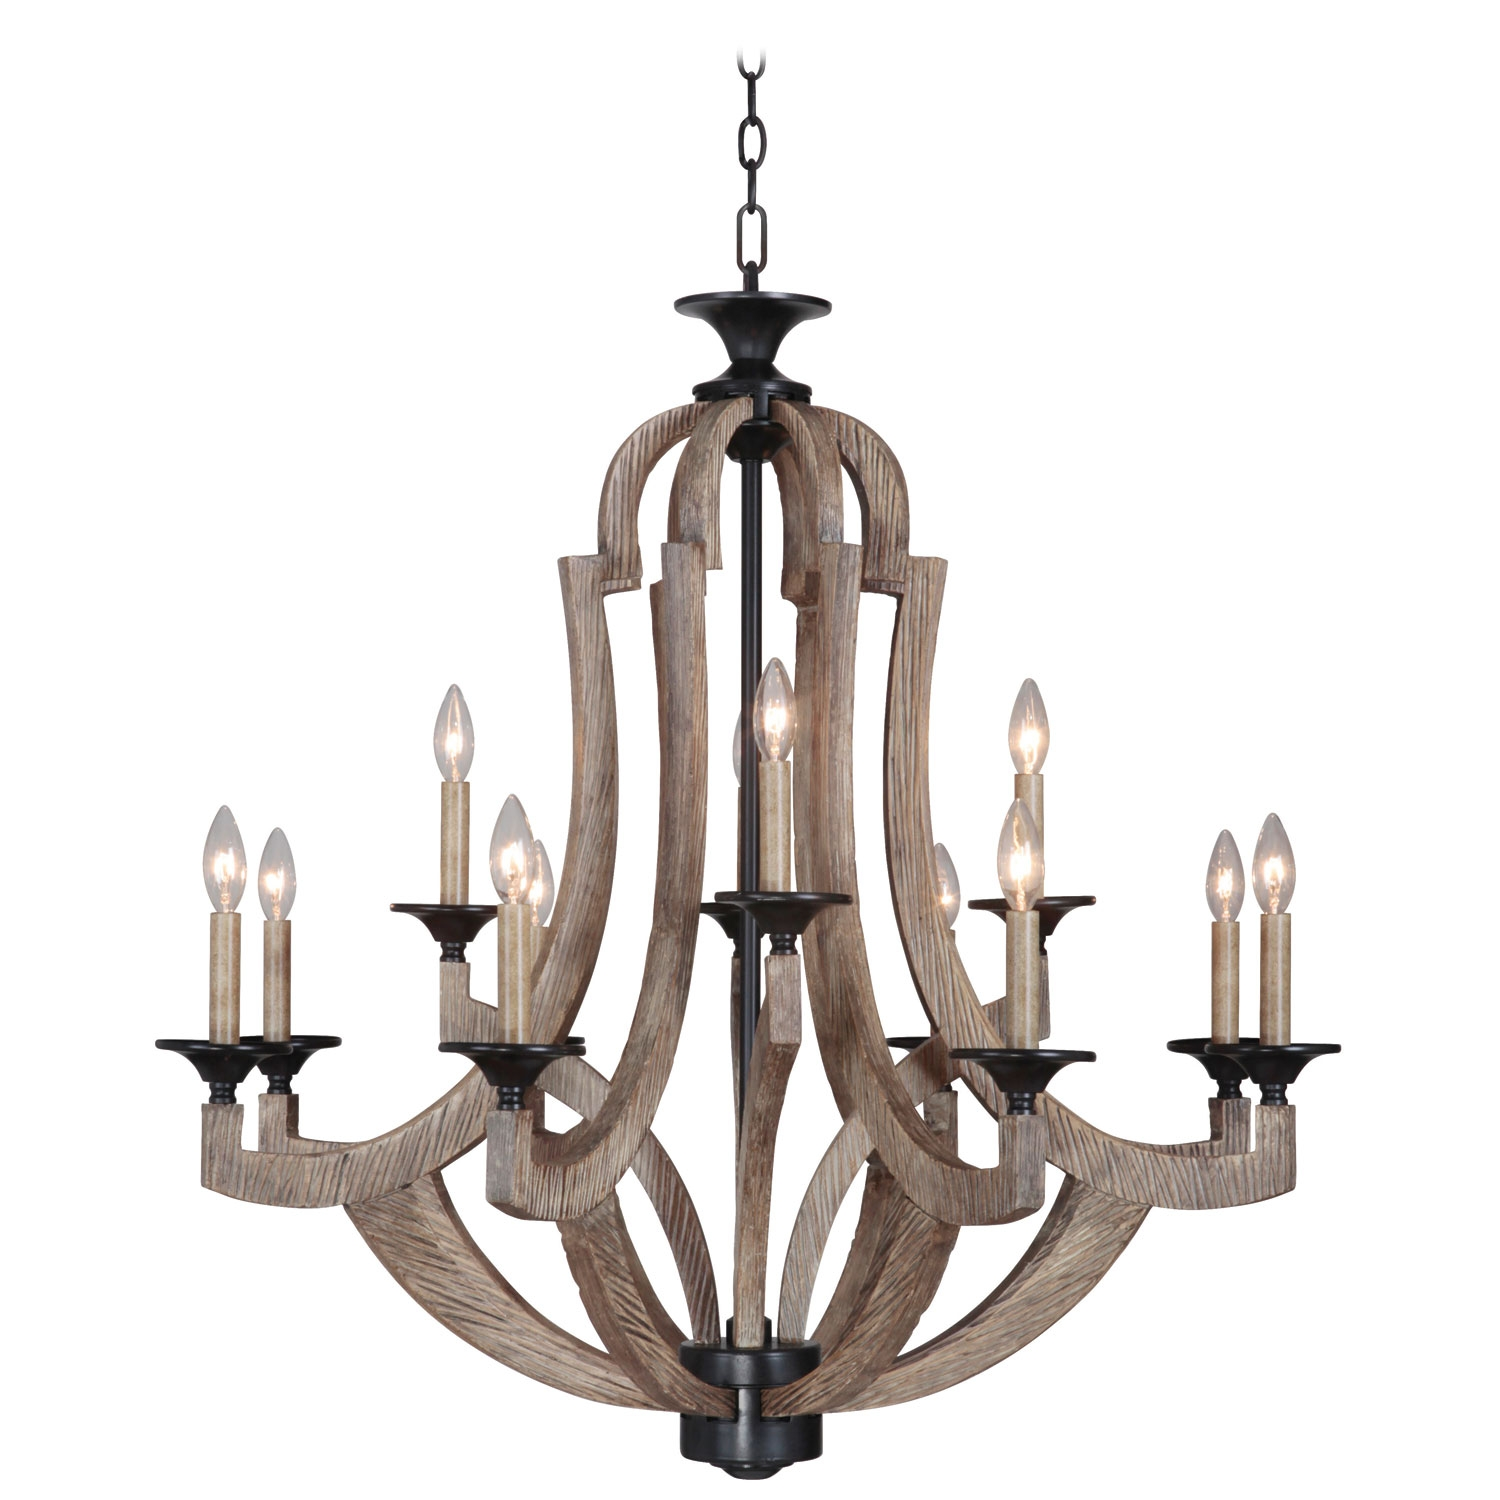 Chandeliers Crystal Modern Iron Shab Chic Country French Within French Style Chandeliers (Image 4 of 15)